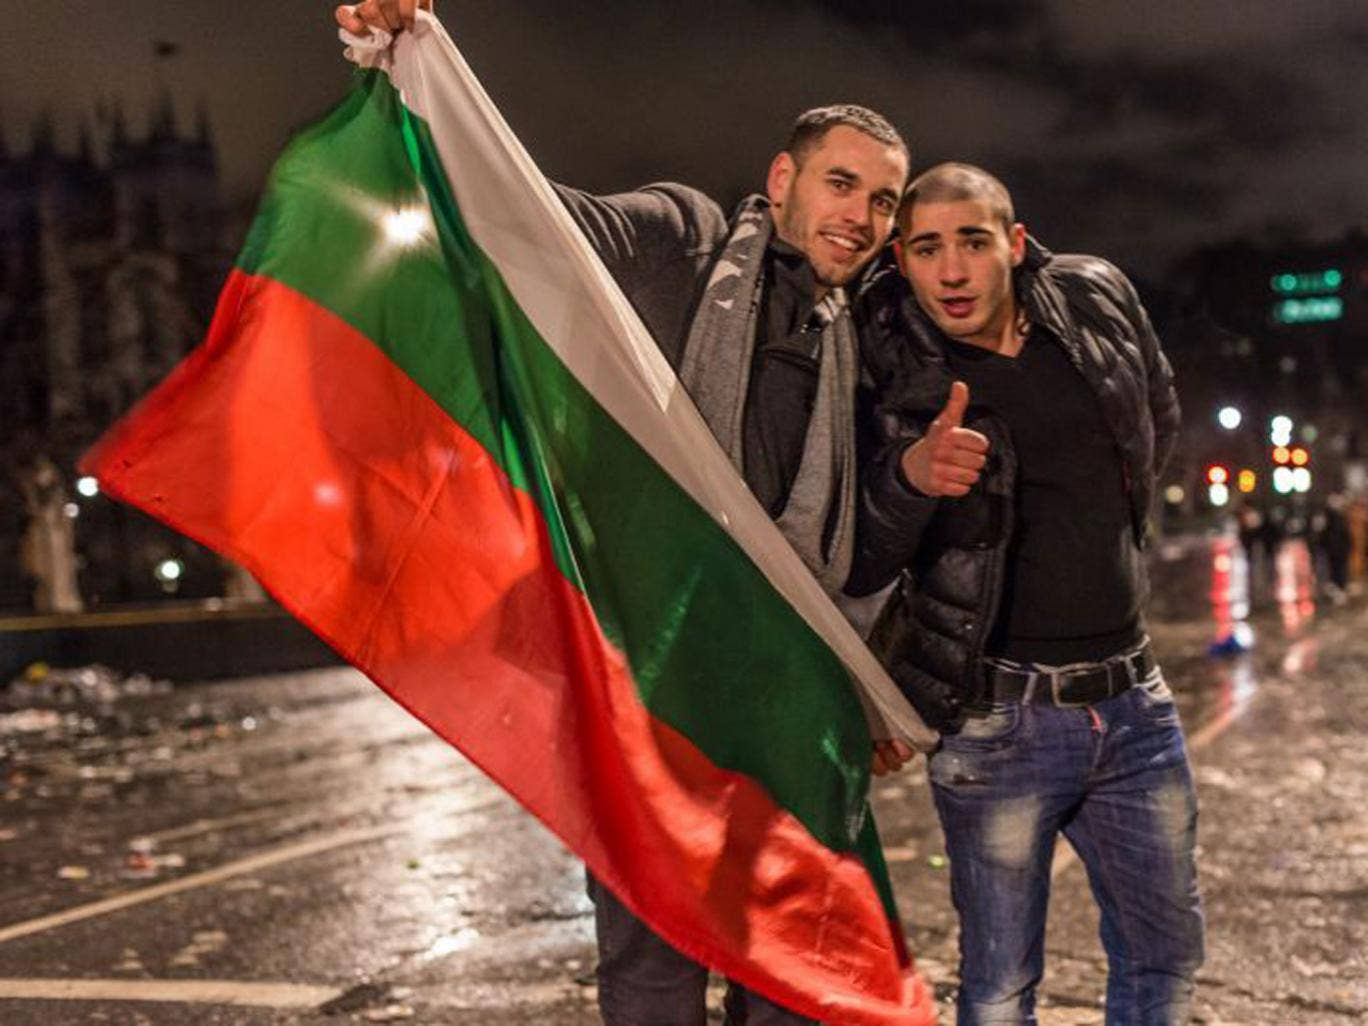 Two Bulgarians in London yesterday, the day restrictions were lifted allowing their countrymen to live and work in Britain